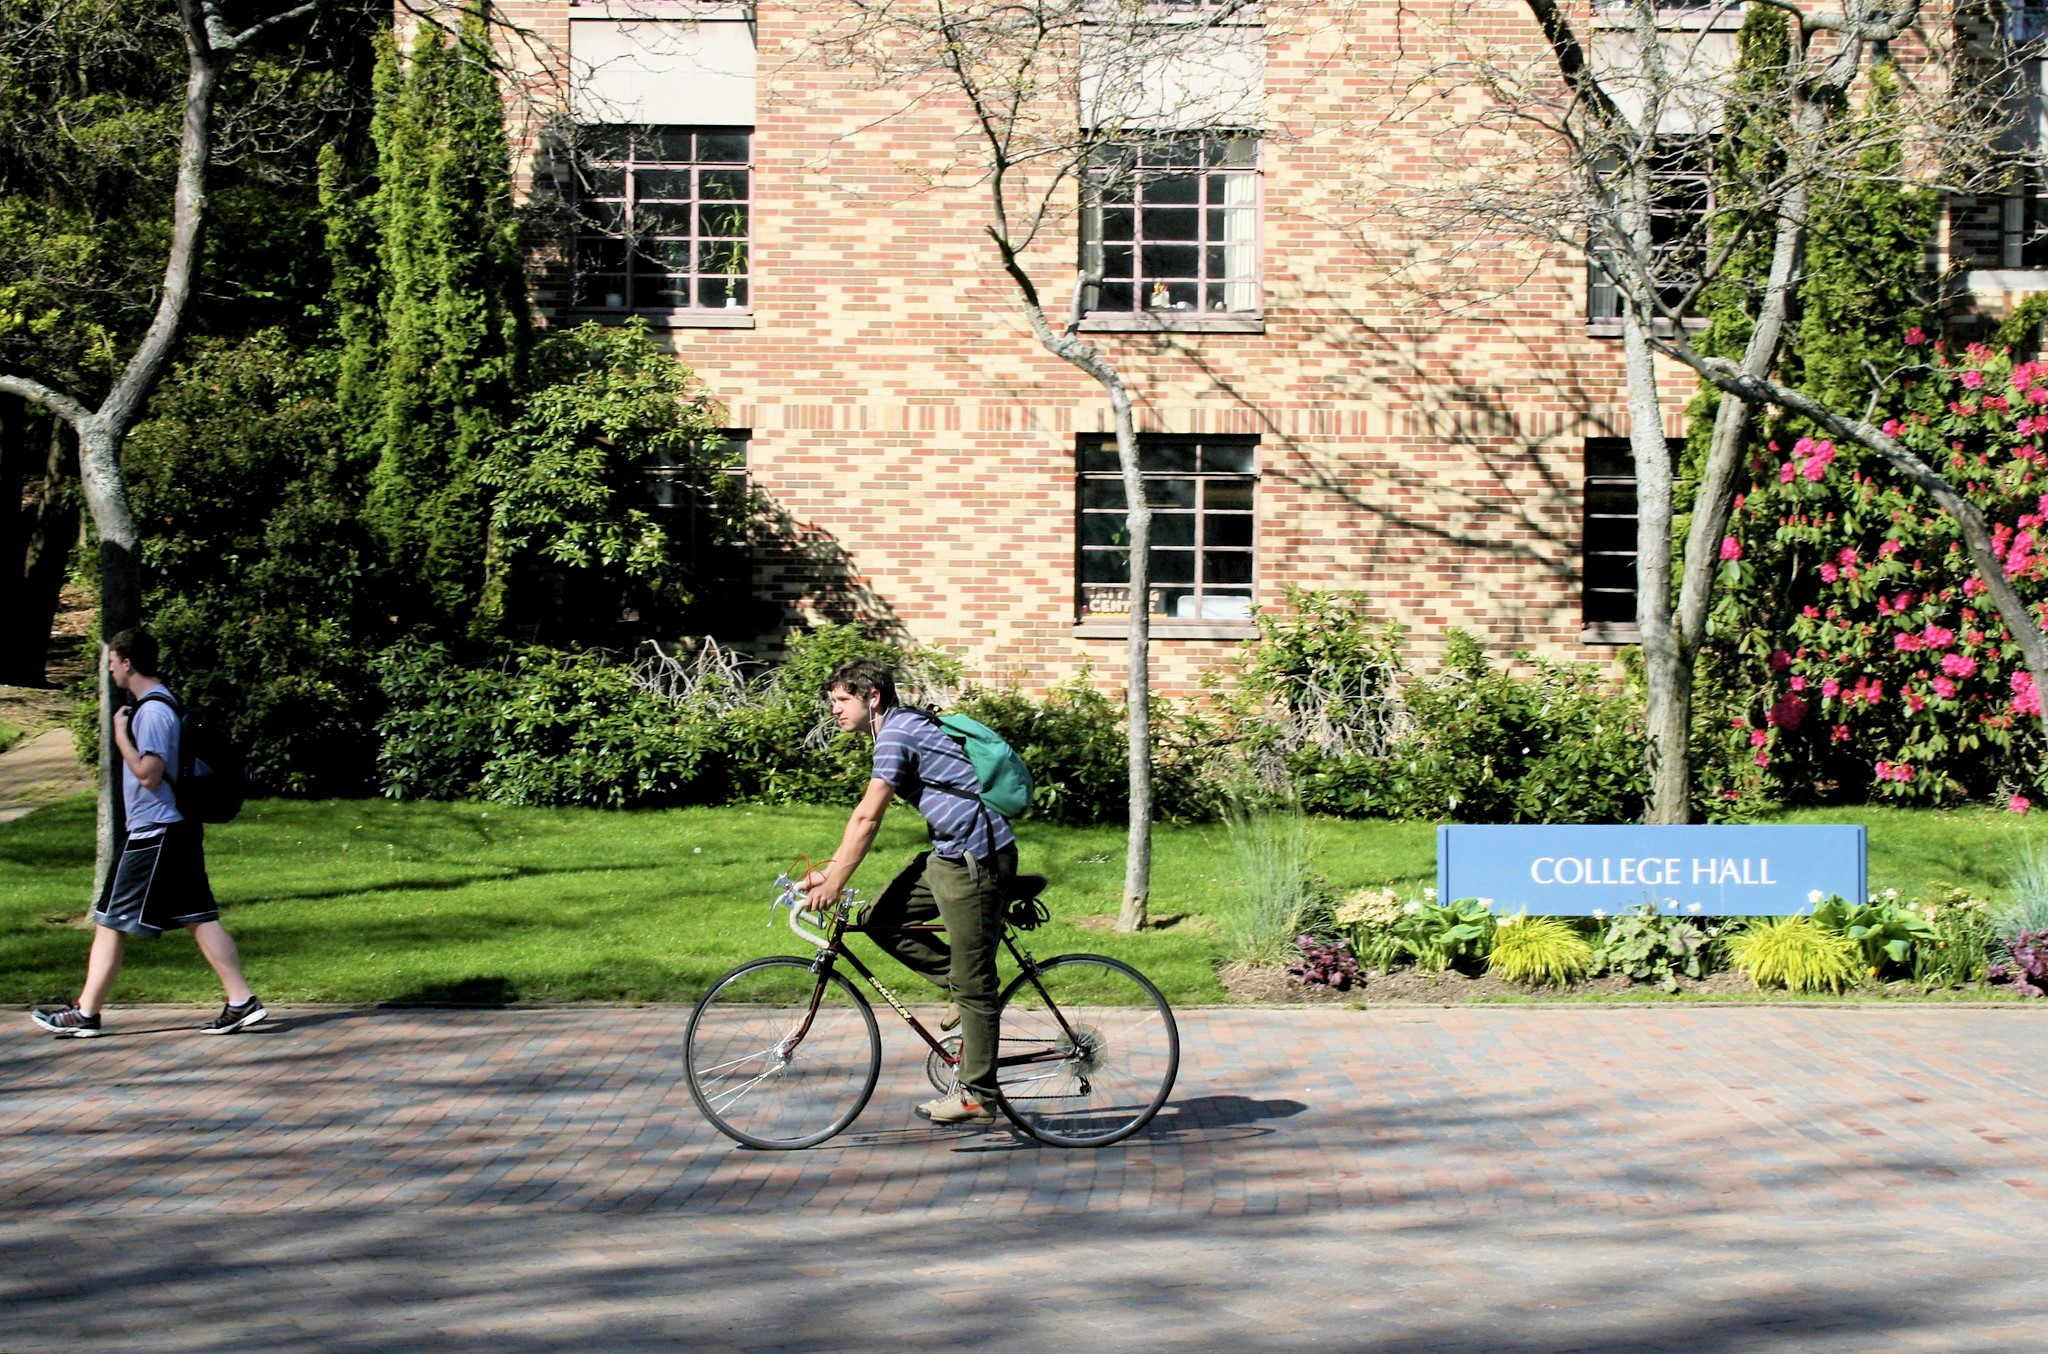 A student rides his bike past College Hall on a sunny day